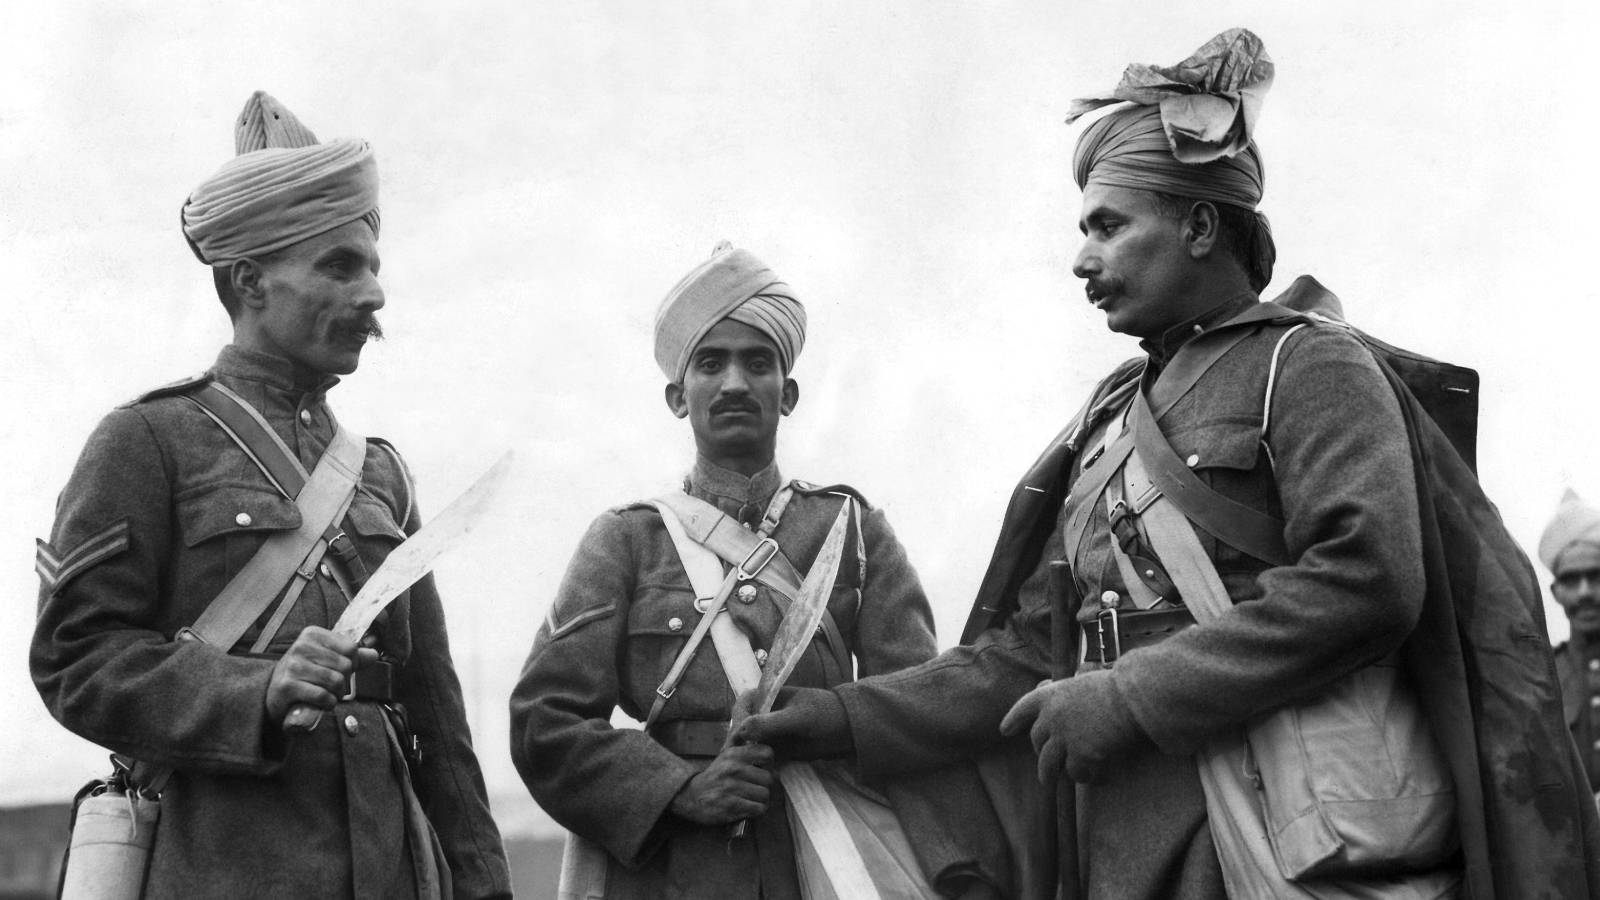 Detachments of the Royal Indian Army service corps and veterinary corps have arrived in France on Feb. 12, 1940, in their camp. Type with the knives which are issued for general utility purposes. The knives are intended for such purposes as cutting picketing pegs and so on.